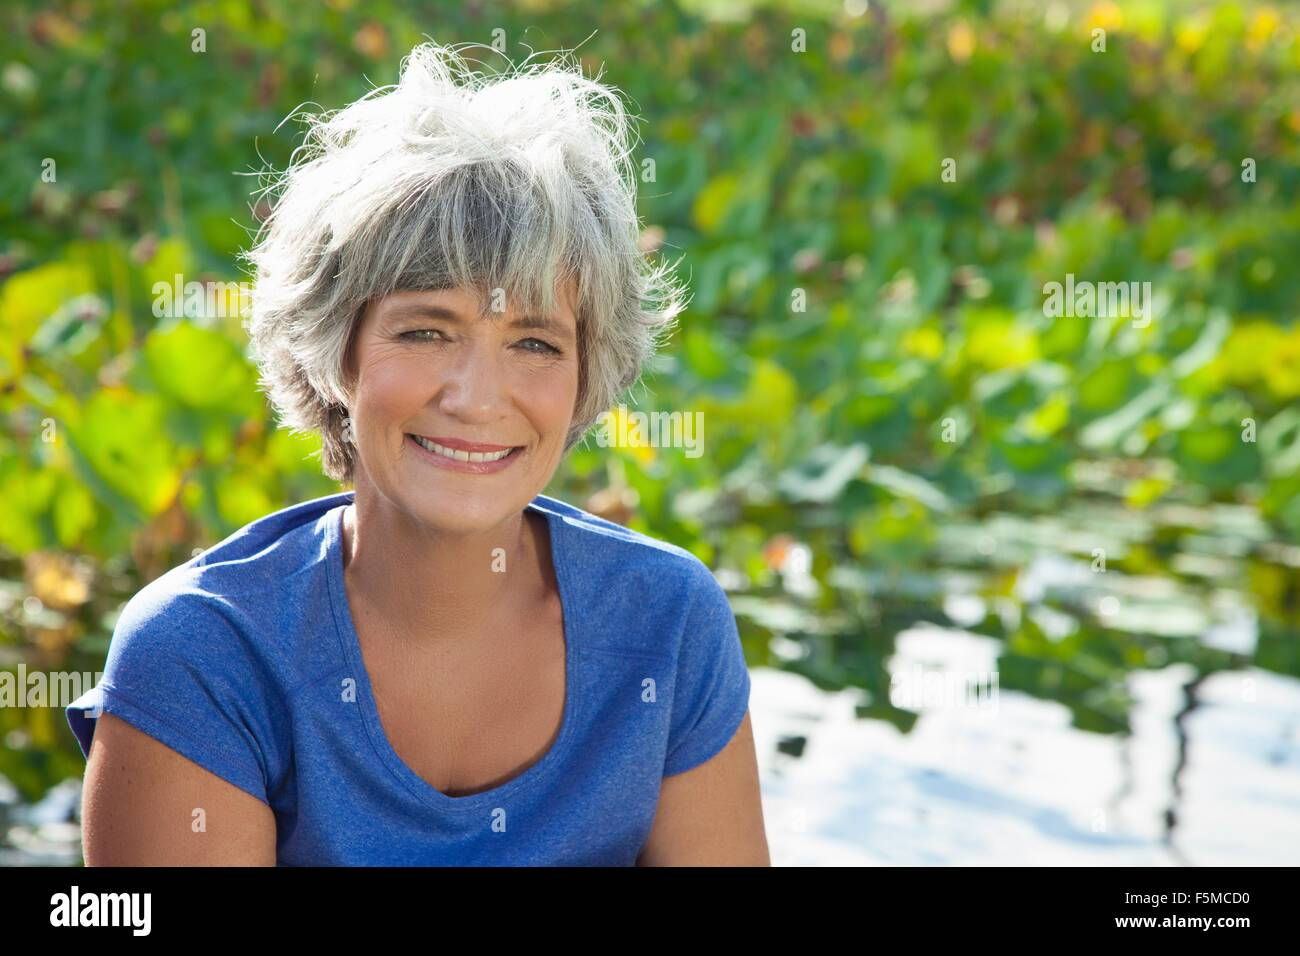 Portrait of young woman outdoors, smiling Photo Stock